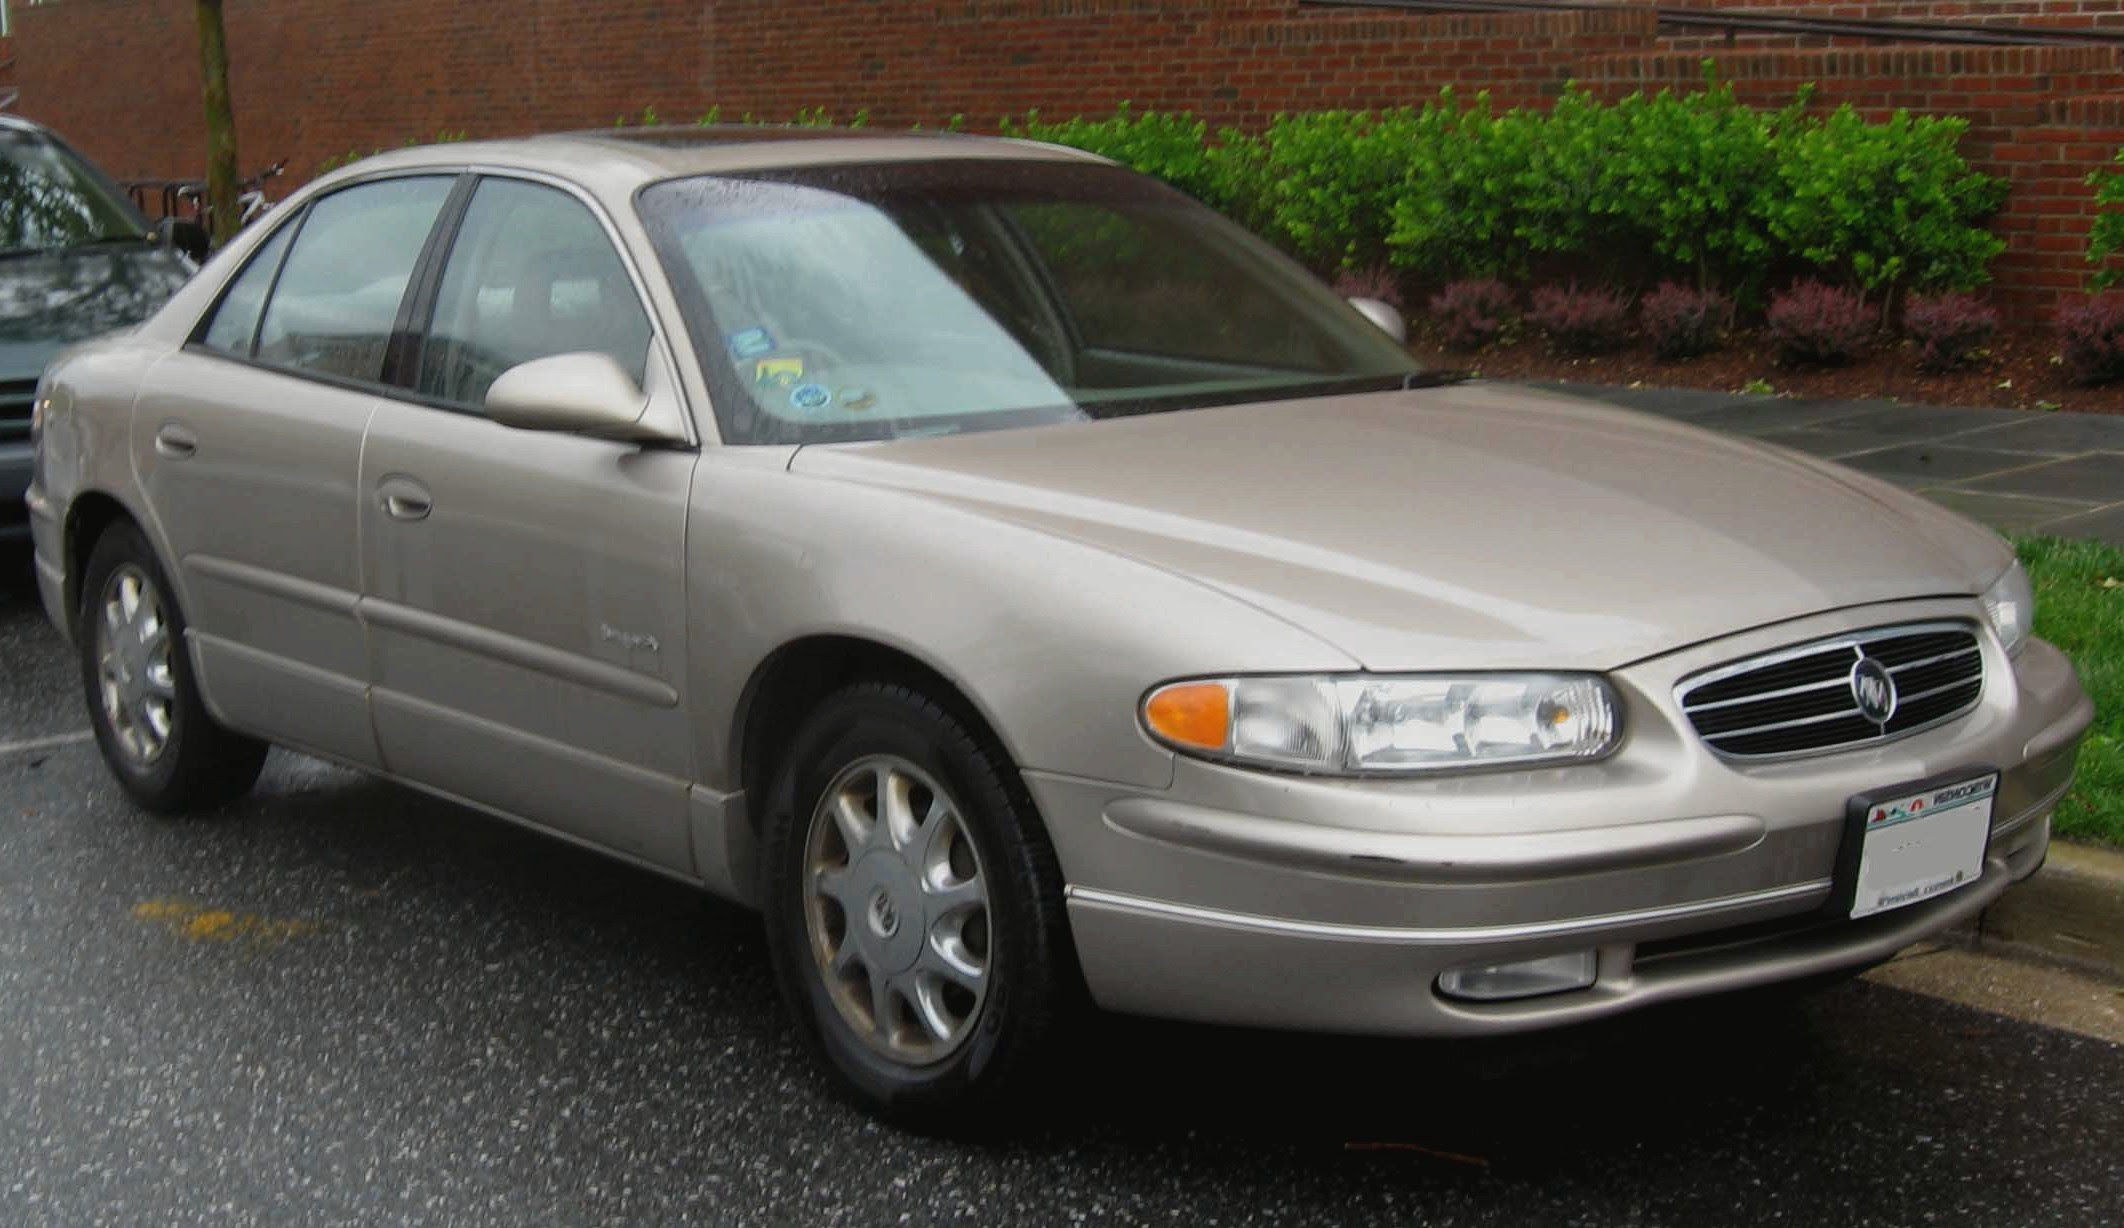 1998 Buick Regal (wf521) - pictures, information and specs ...